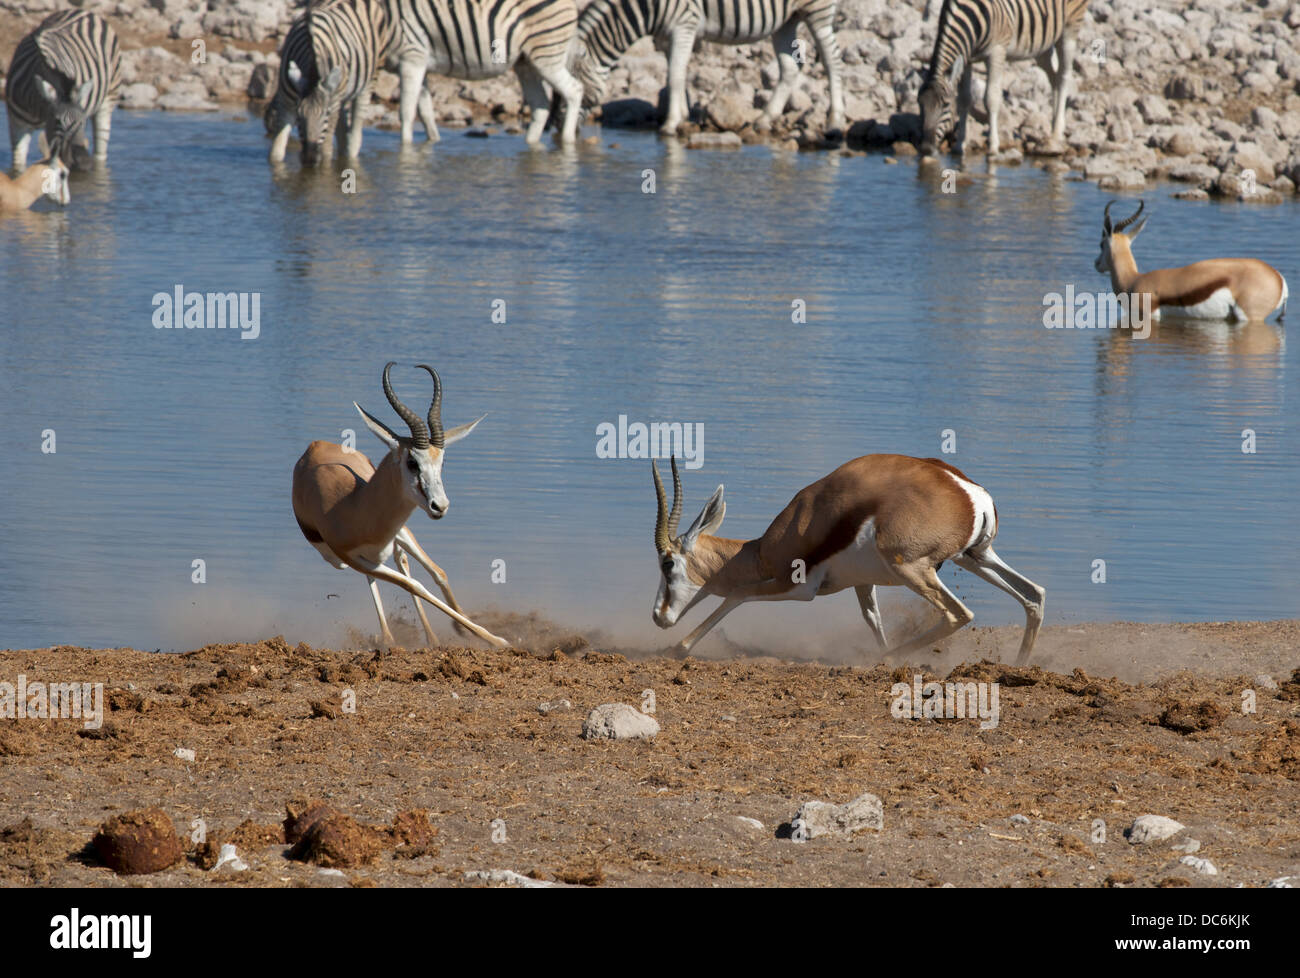 Fighting springboks at watering hole - Stock Image